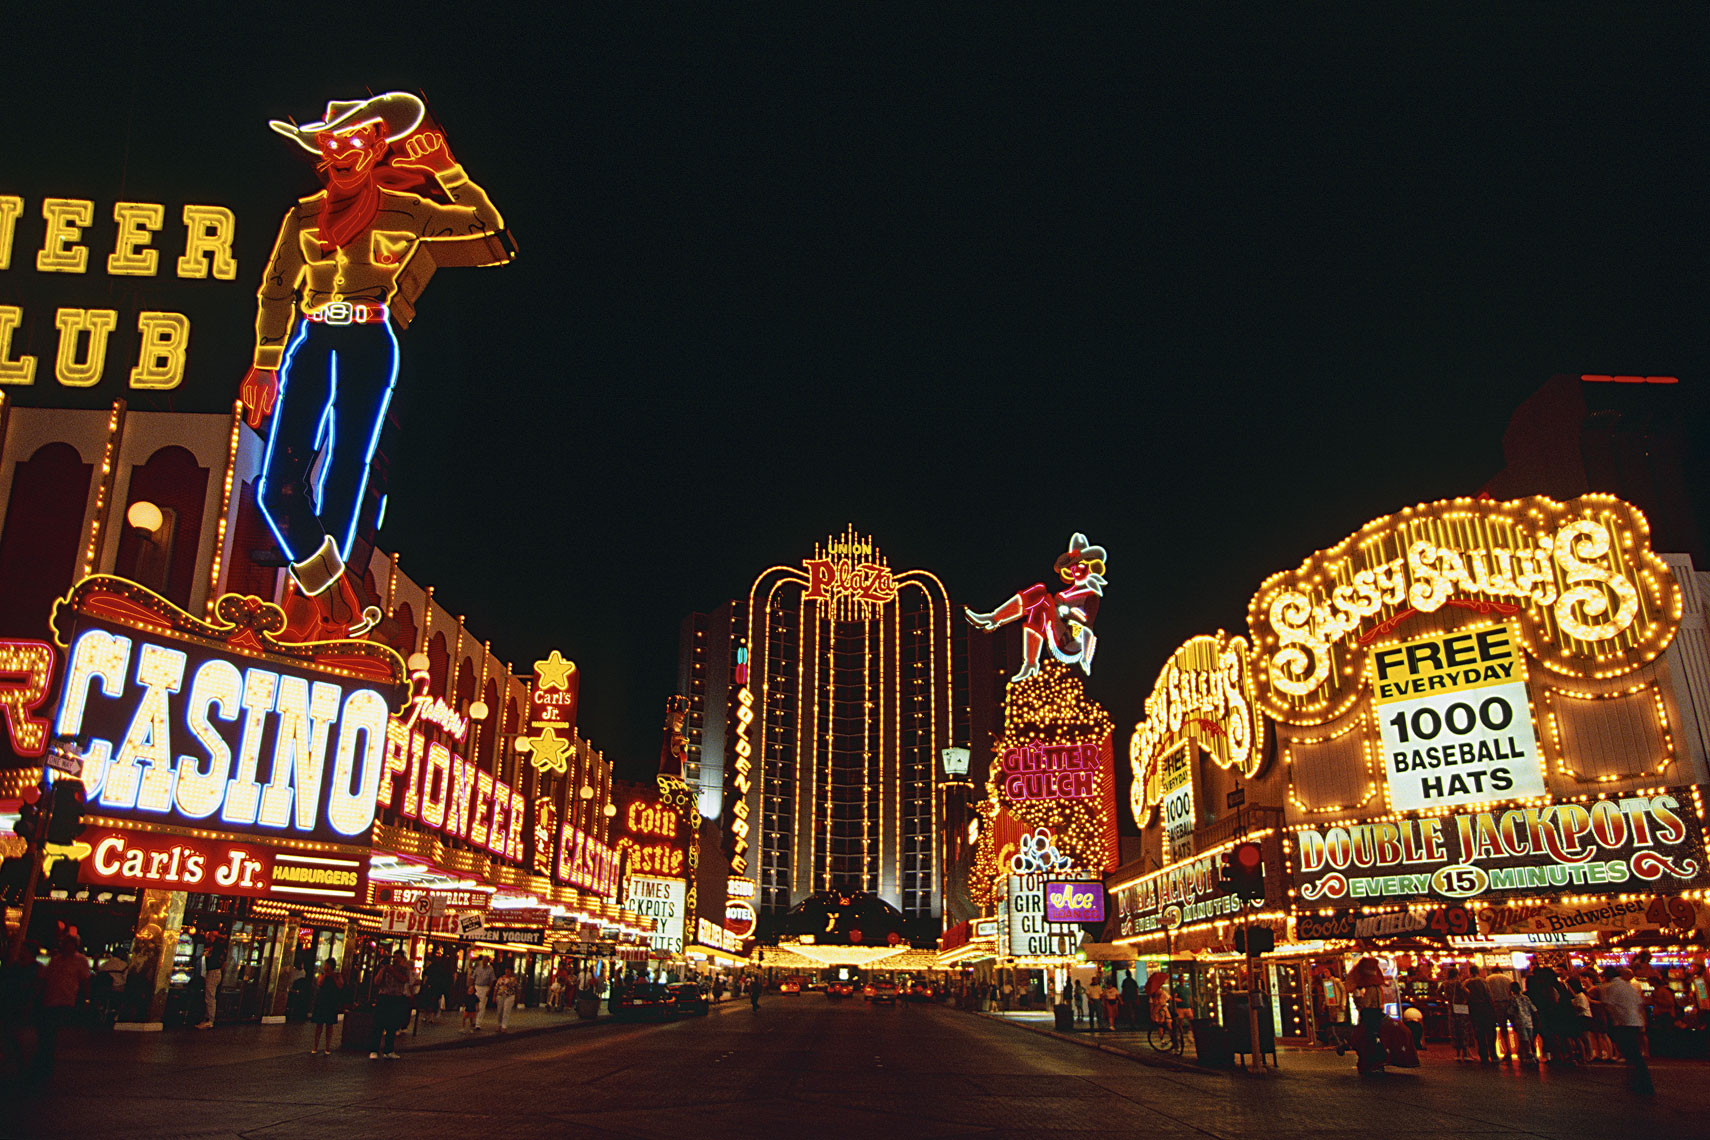 11_Las_Vegas_Old_Strip